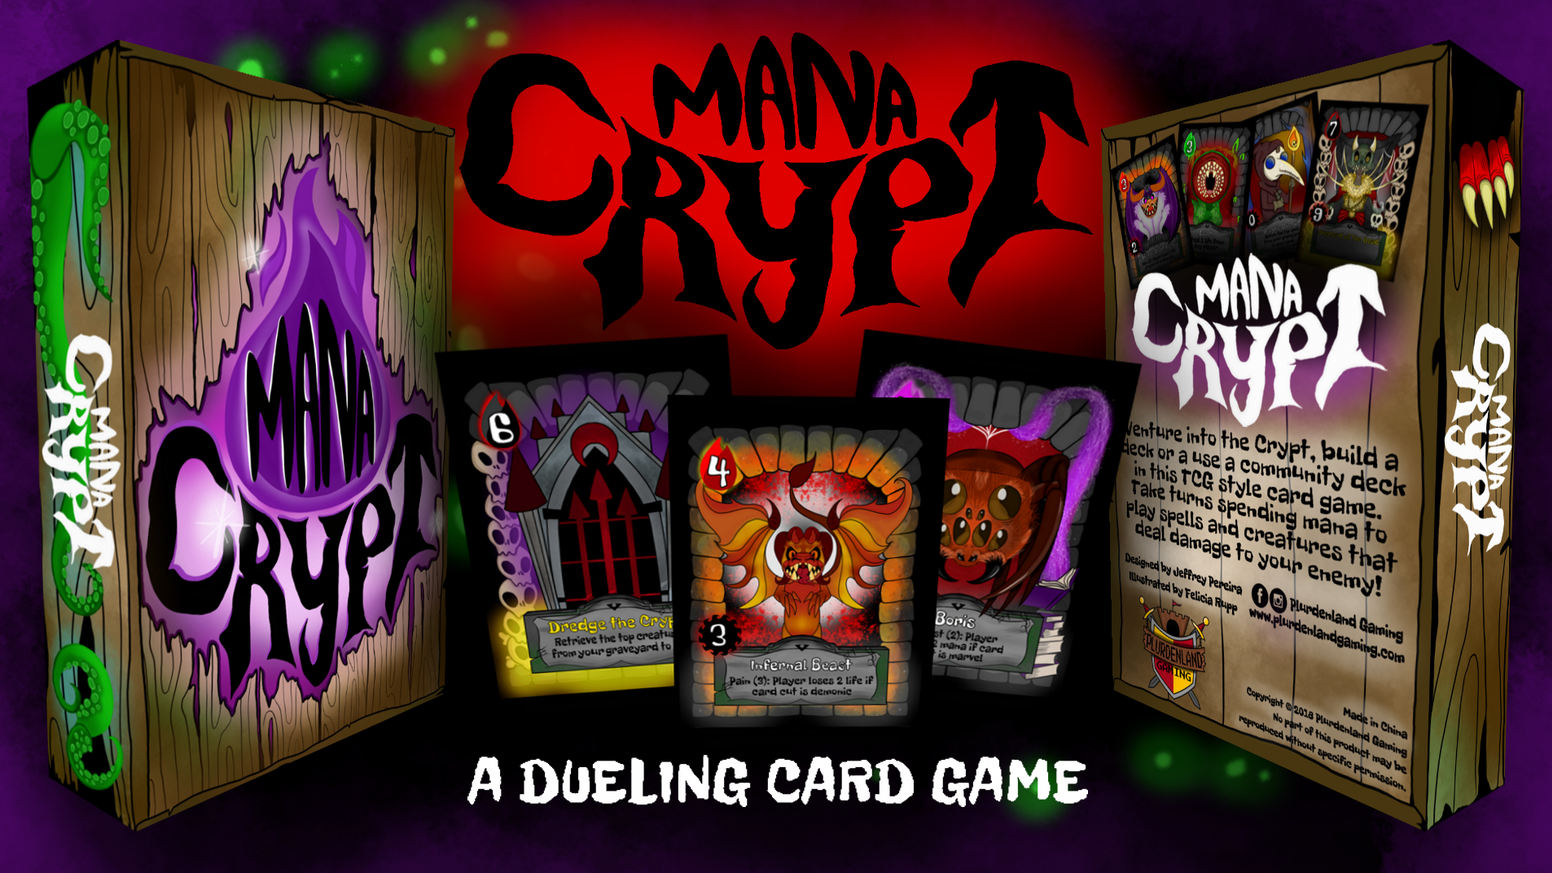 Venture into the Crypt. Build a deck, bury your enemies. Spend mana to play spell and creature cards in this tcg style card game.